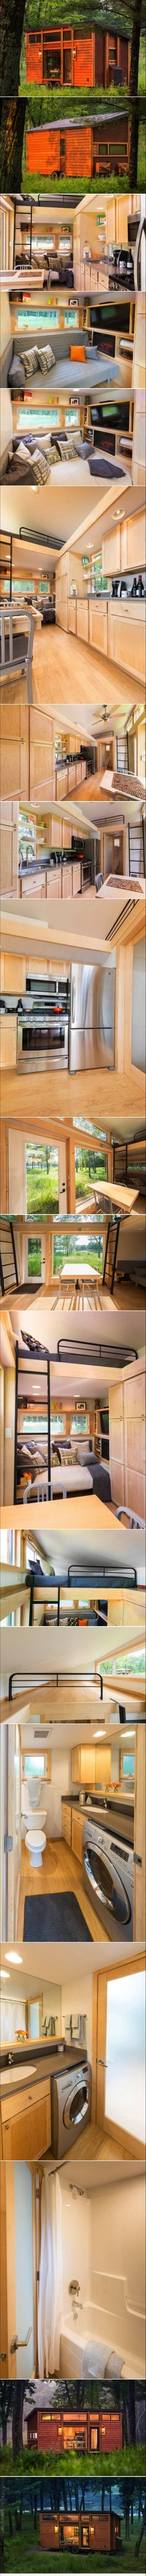 Not really a container but this is the only tiny house that actually looks workable